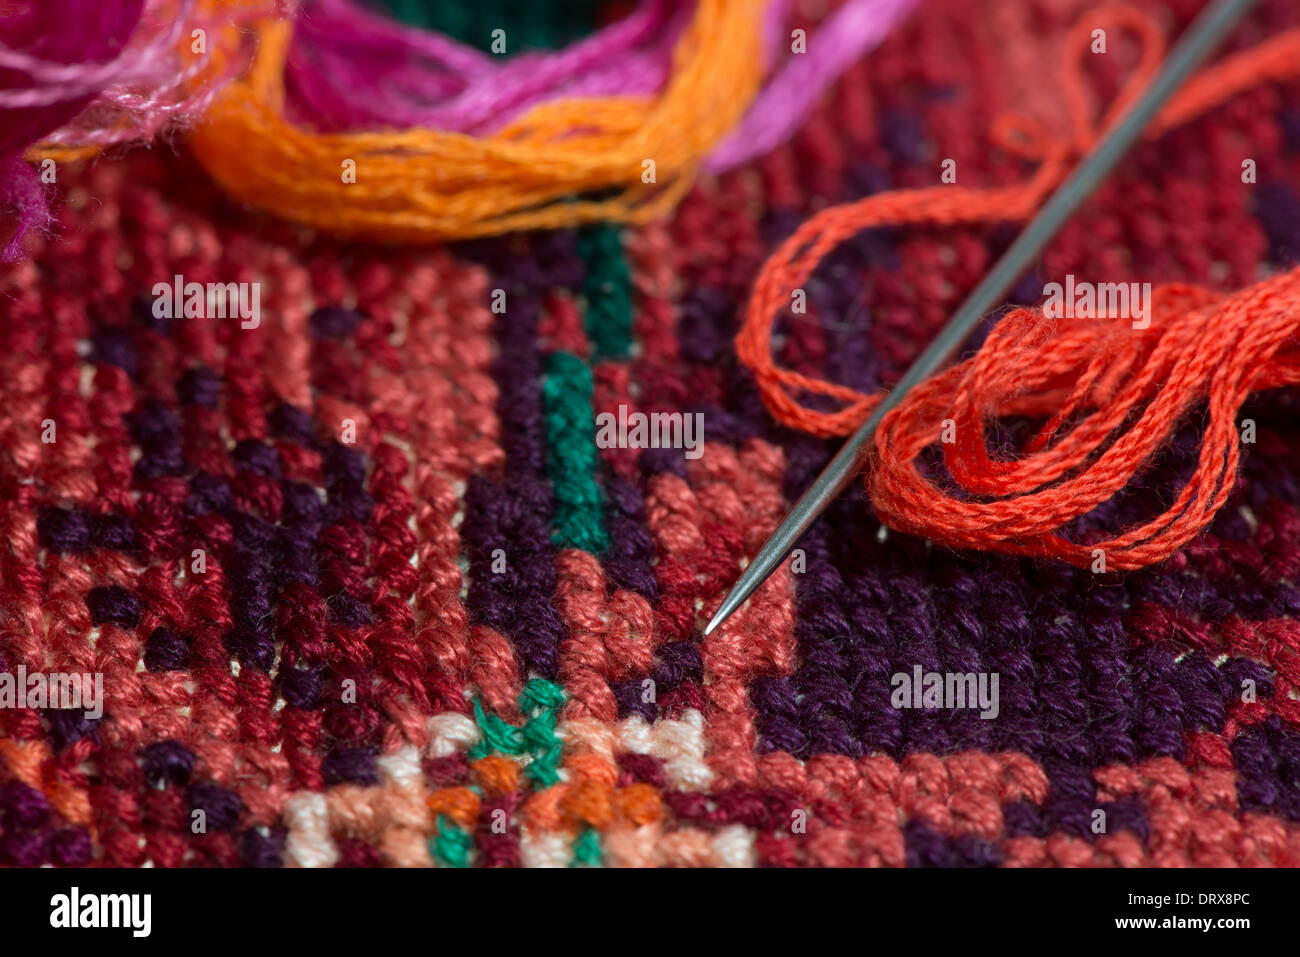 skeins of multicolored threads for embroidery - muline. against the background of cross-stitch - Stock Image